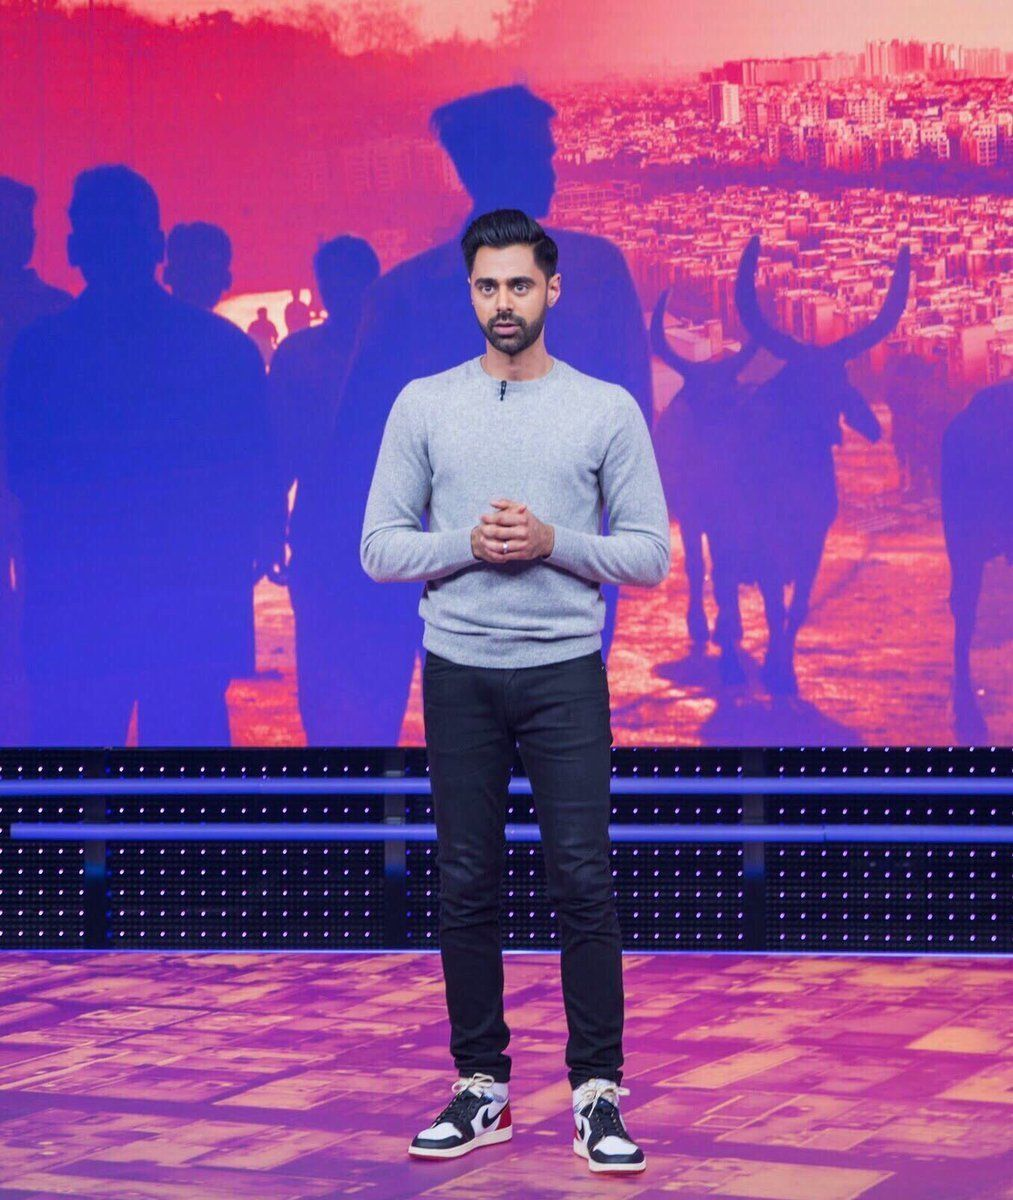 'Bhakts Are Coming': Hasan Minhaj's Episode On Lok Sabha Elections Has Twitter Worried